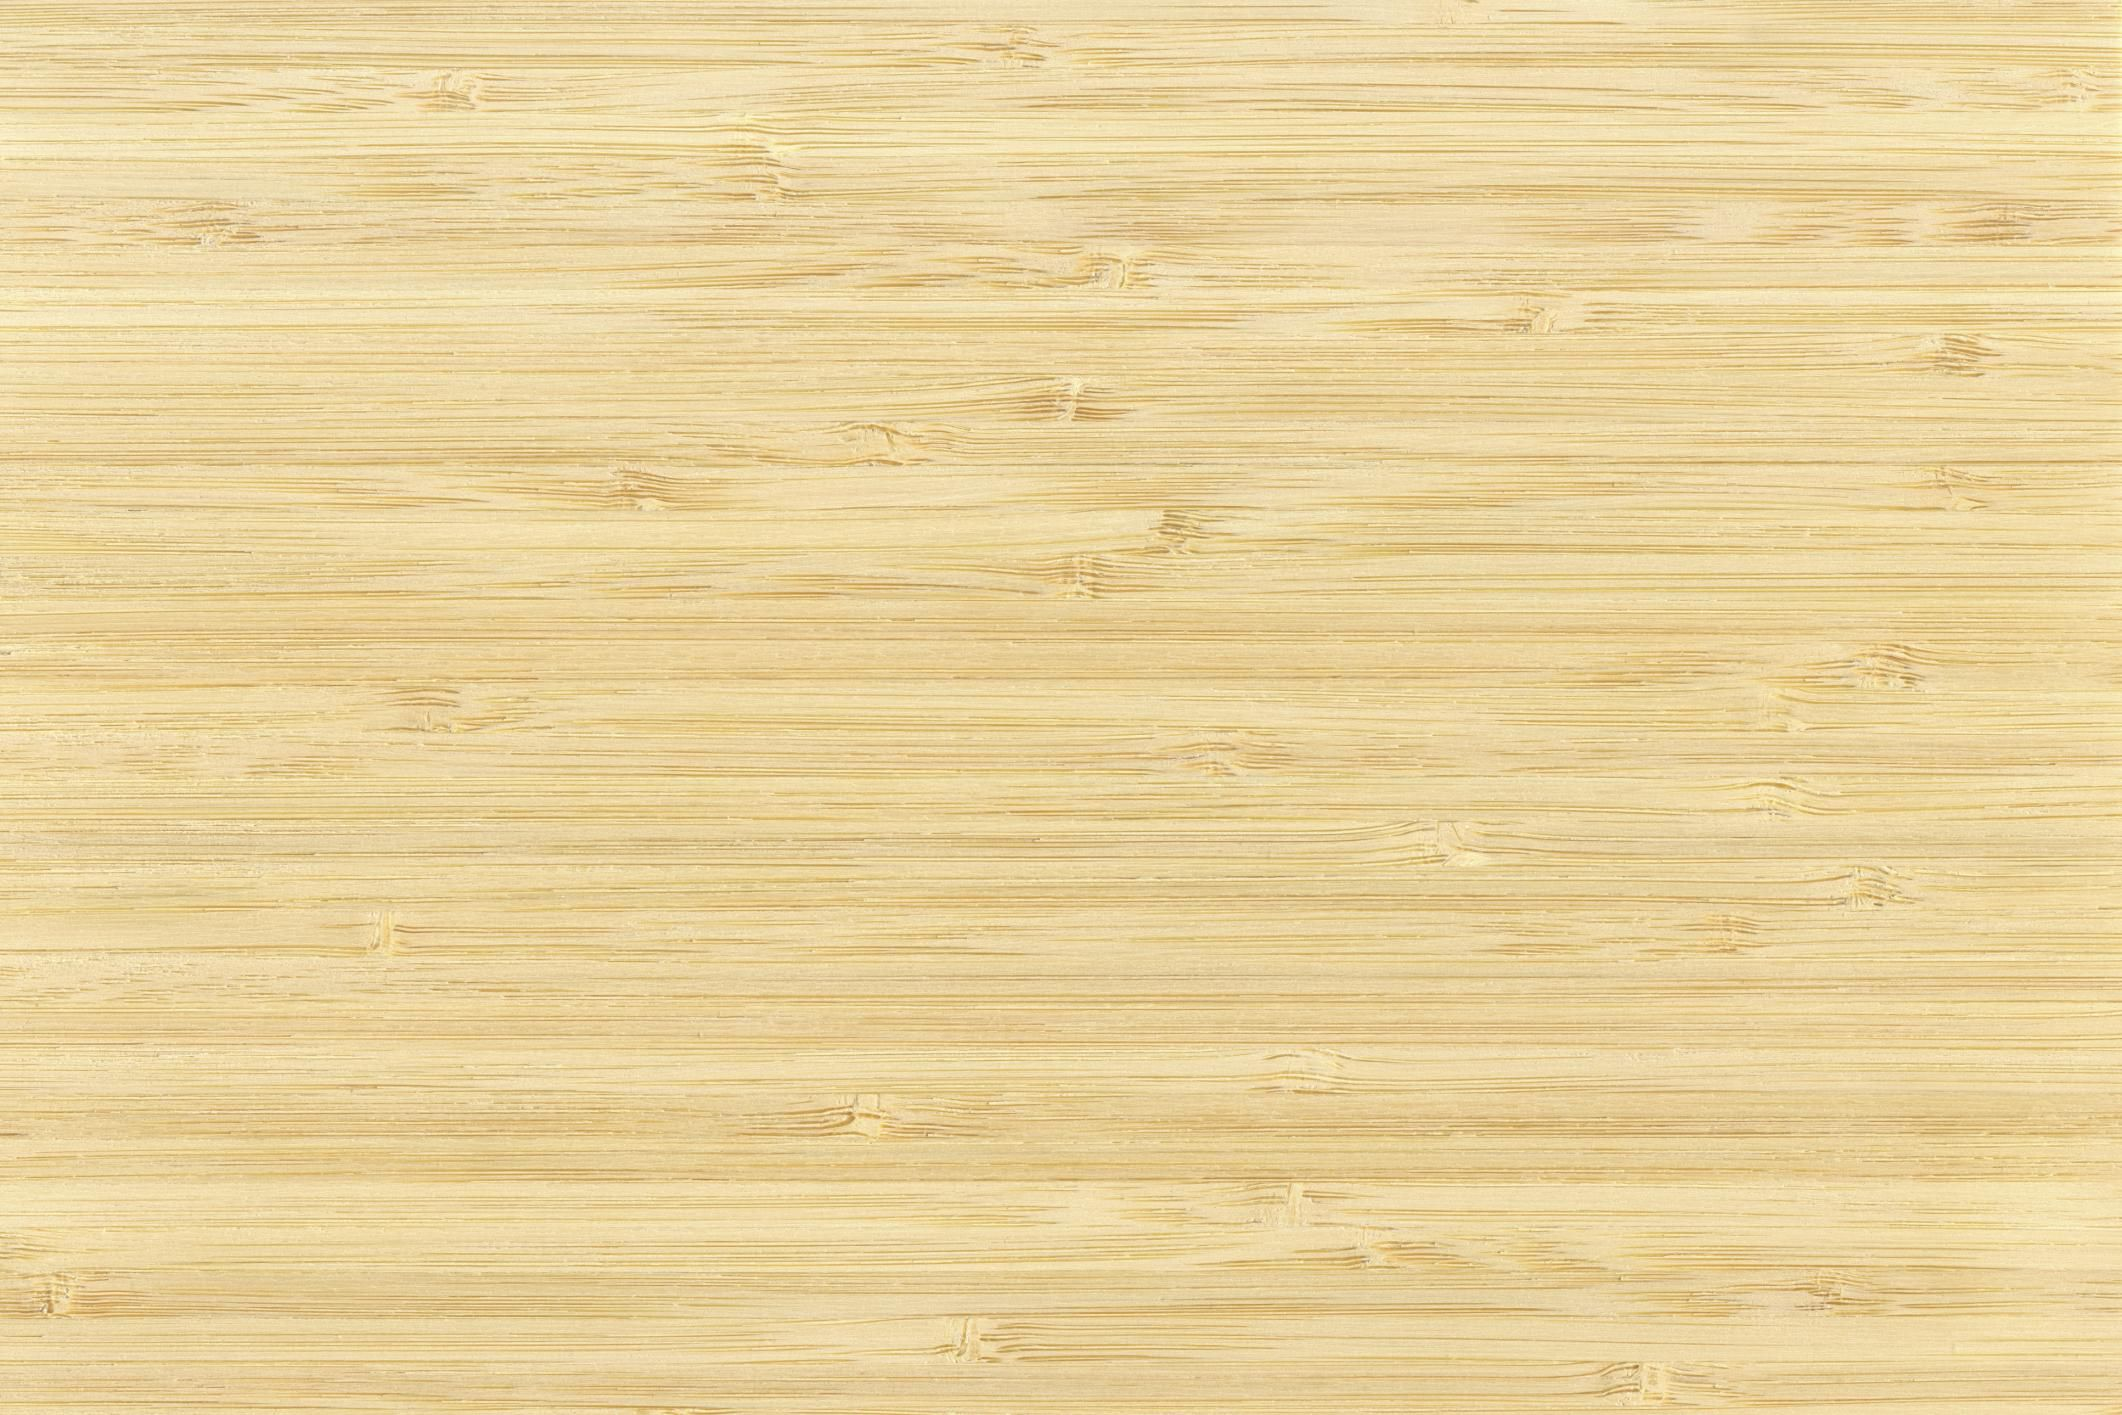 Bamboo flooring in a bathroom things to consider for Flooring floor